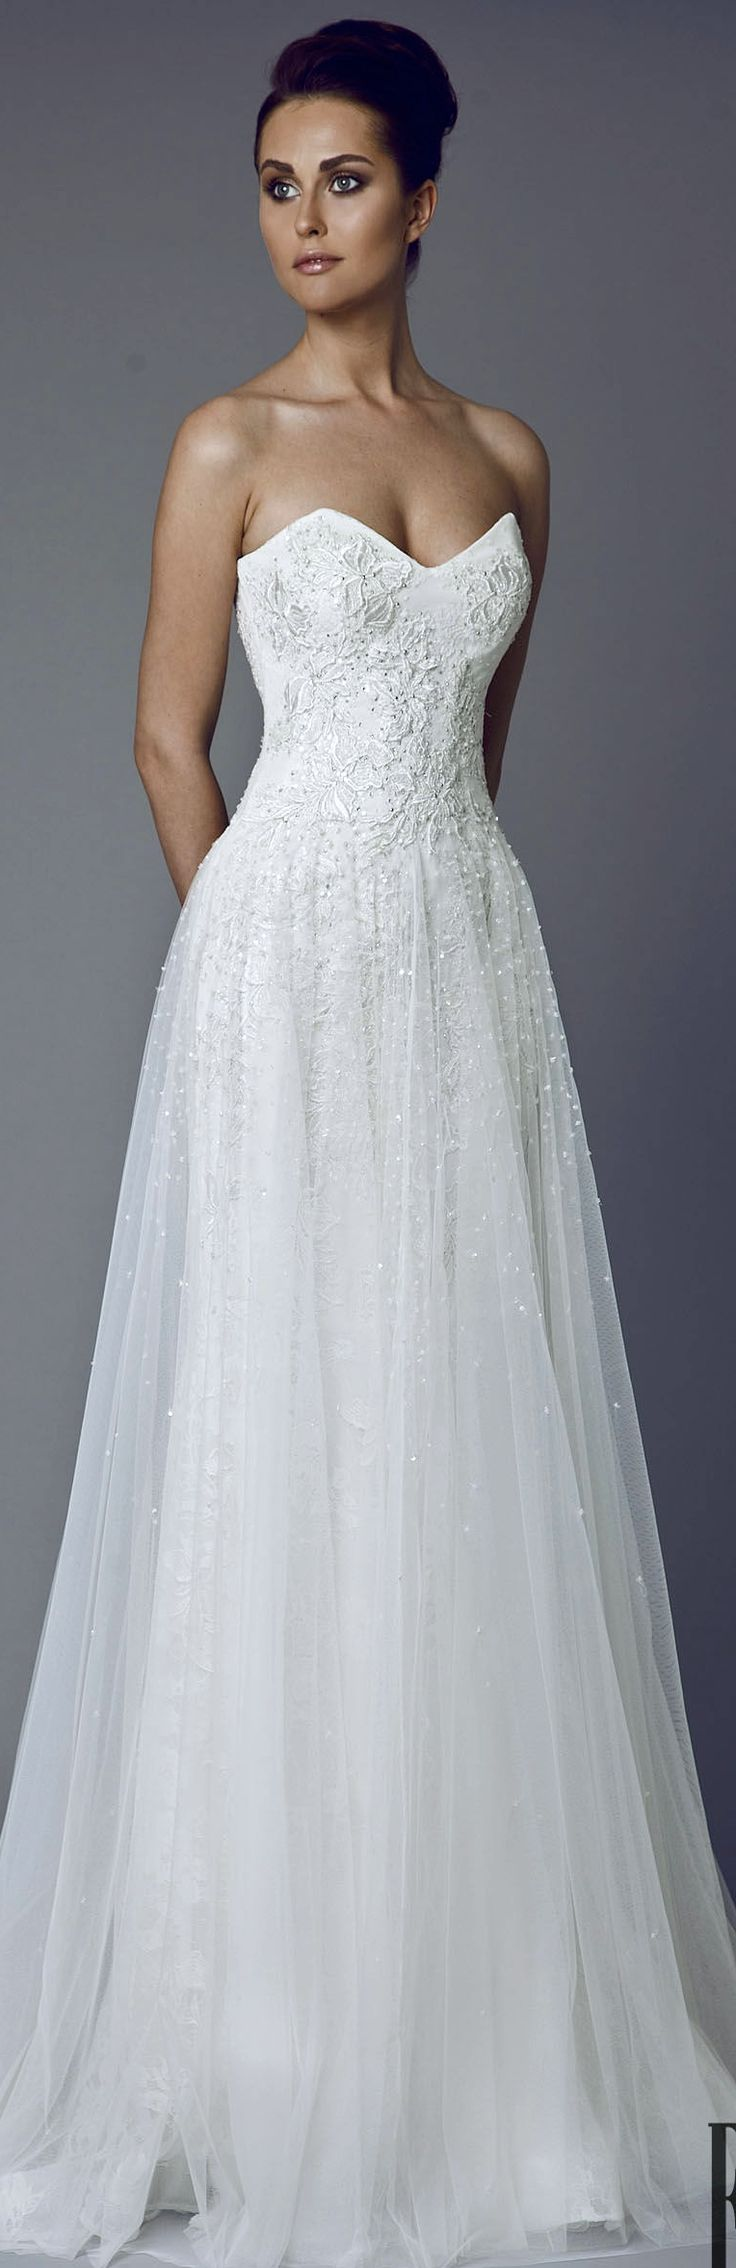 Tony Ward Bridal 2015 Amazing! If I could do it over...